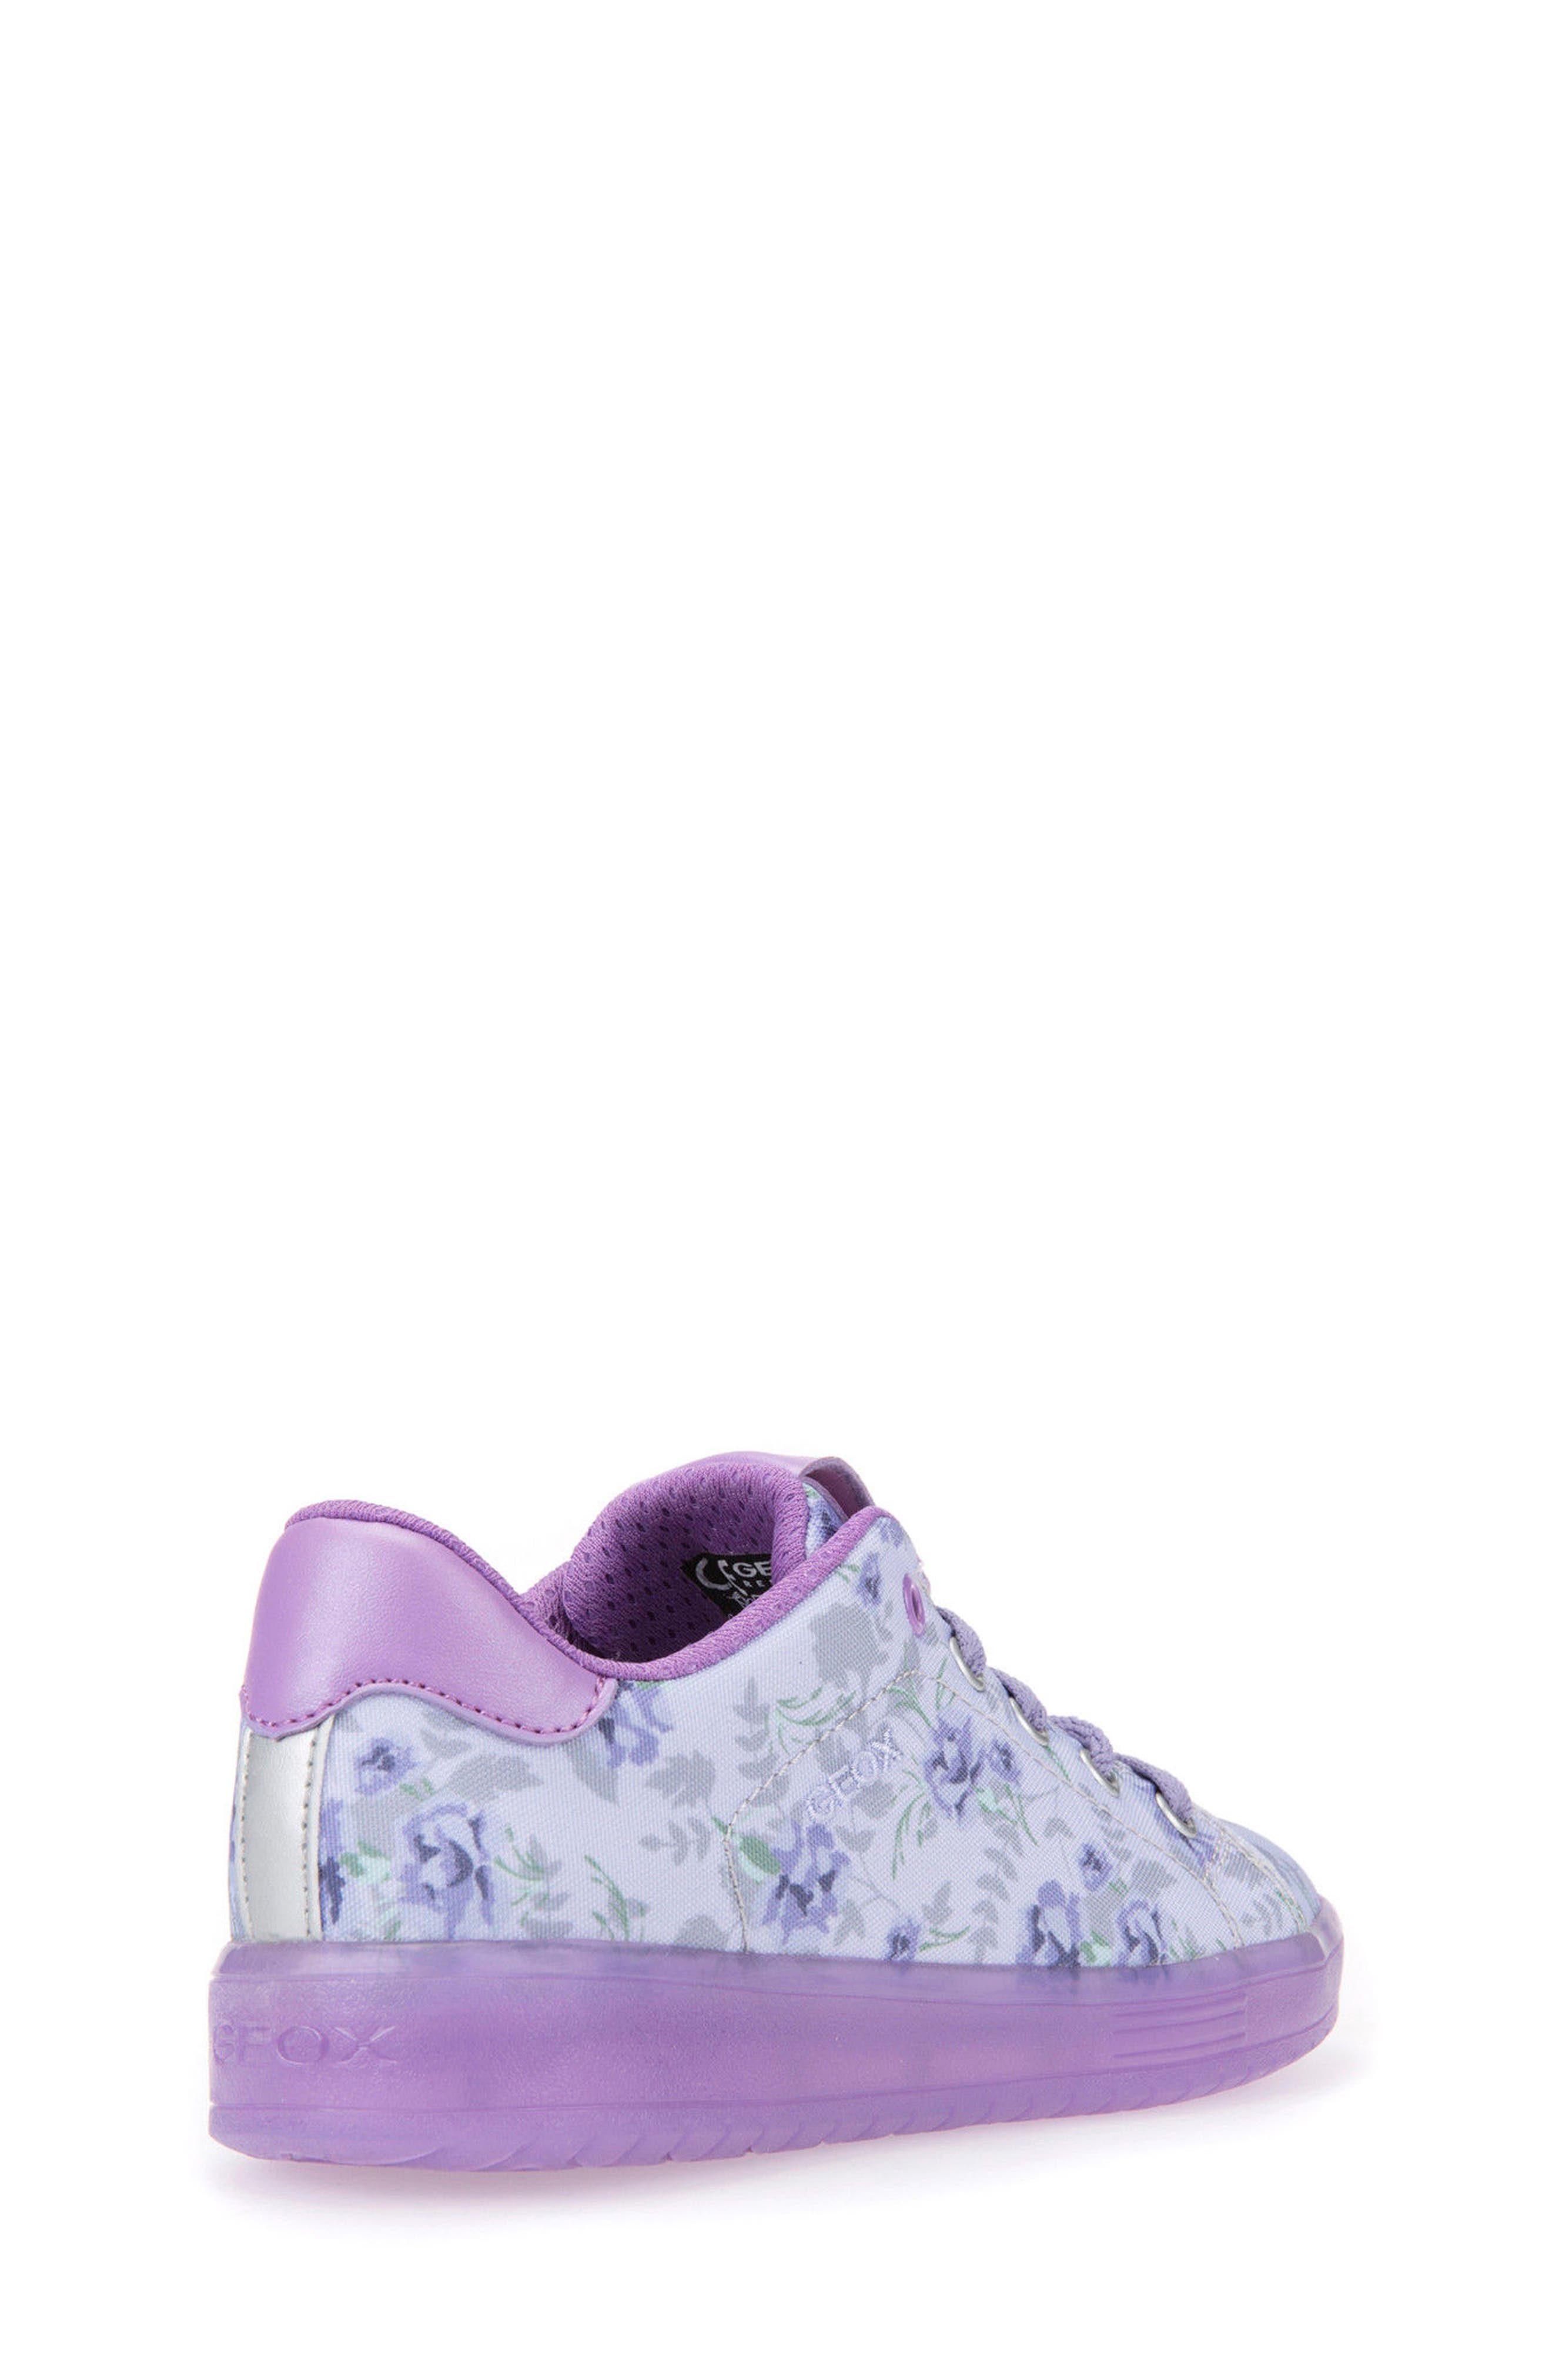 Kommodor Light-Up Sneaker,                             Alternate thumbnail 2, color,                             LIGHT LILAC/ LILAC